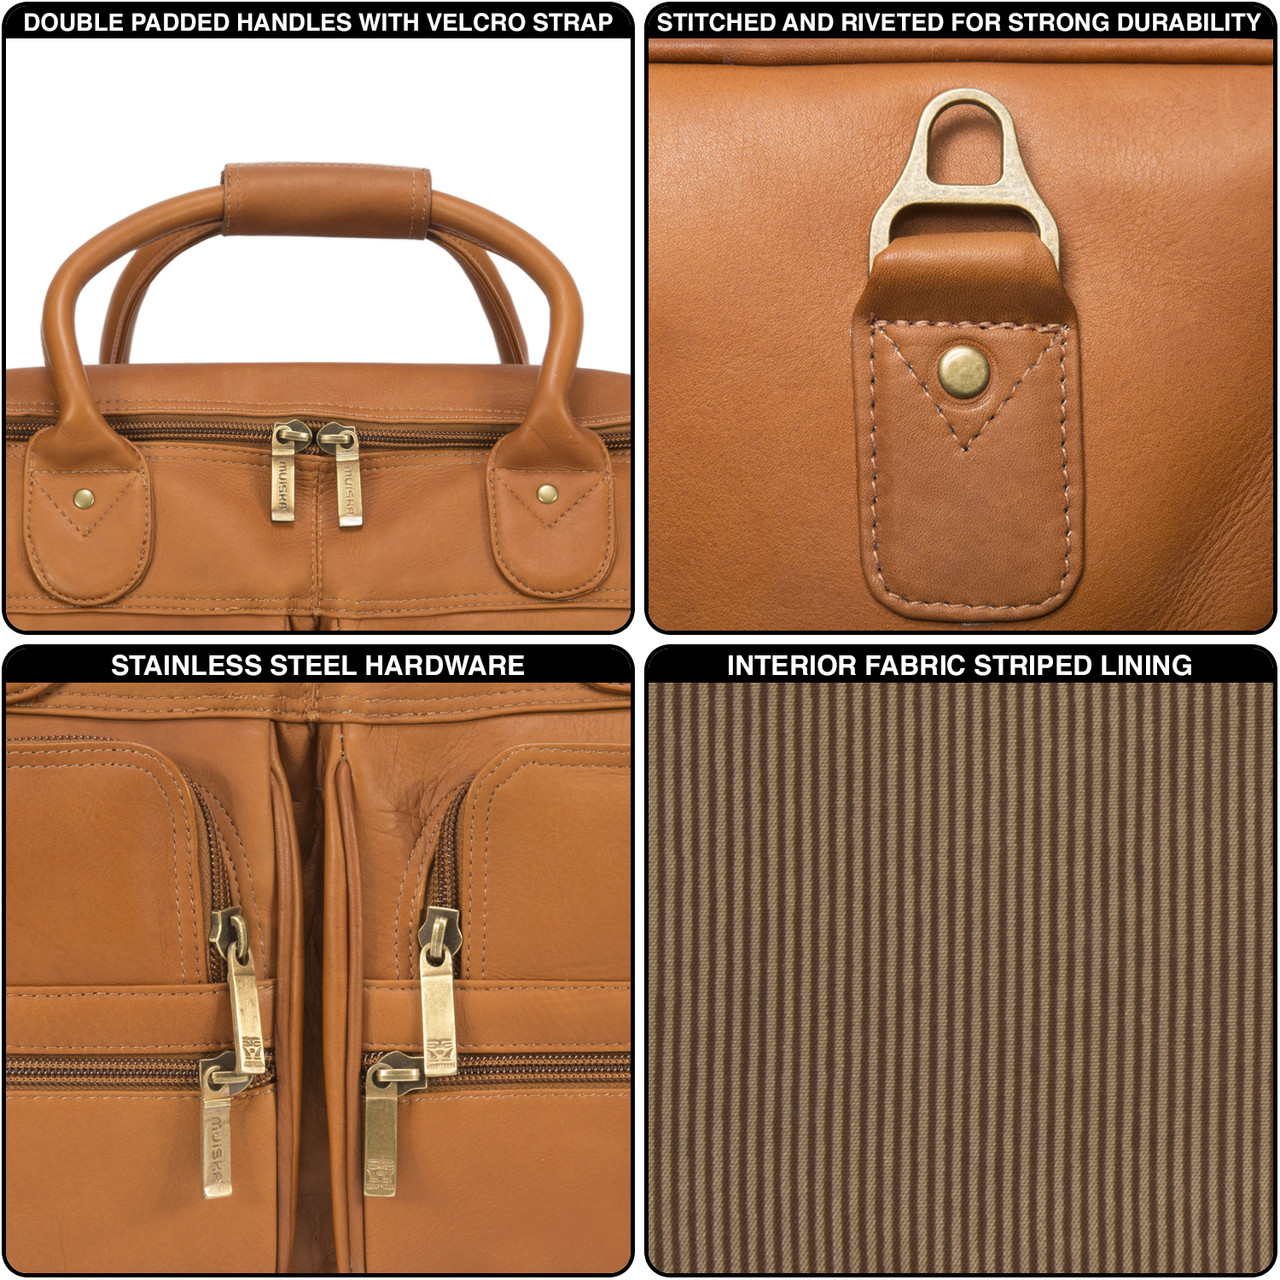 Muiska - New York - Leather Weekend Bag has stainless steel hardware and double stitched seams